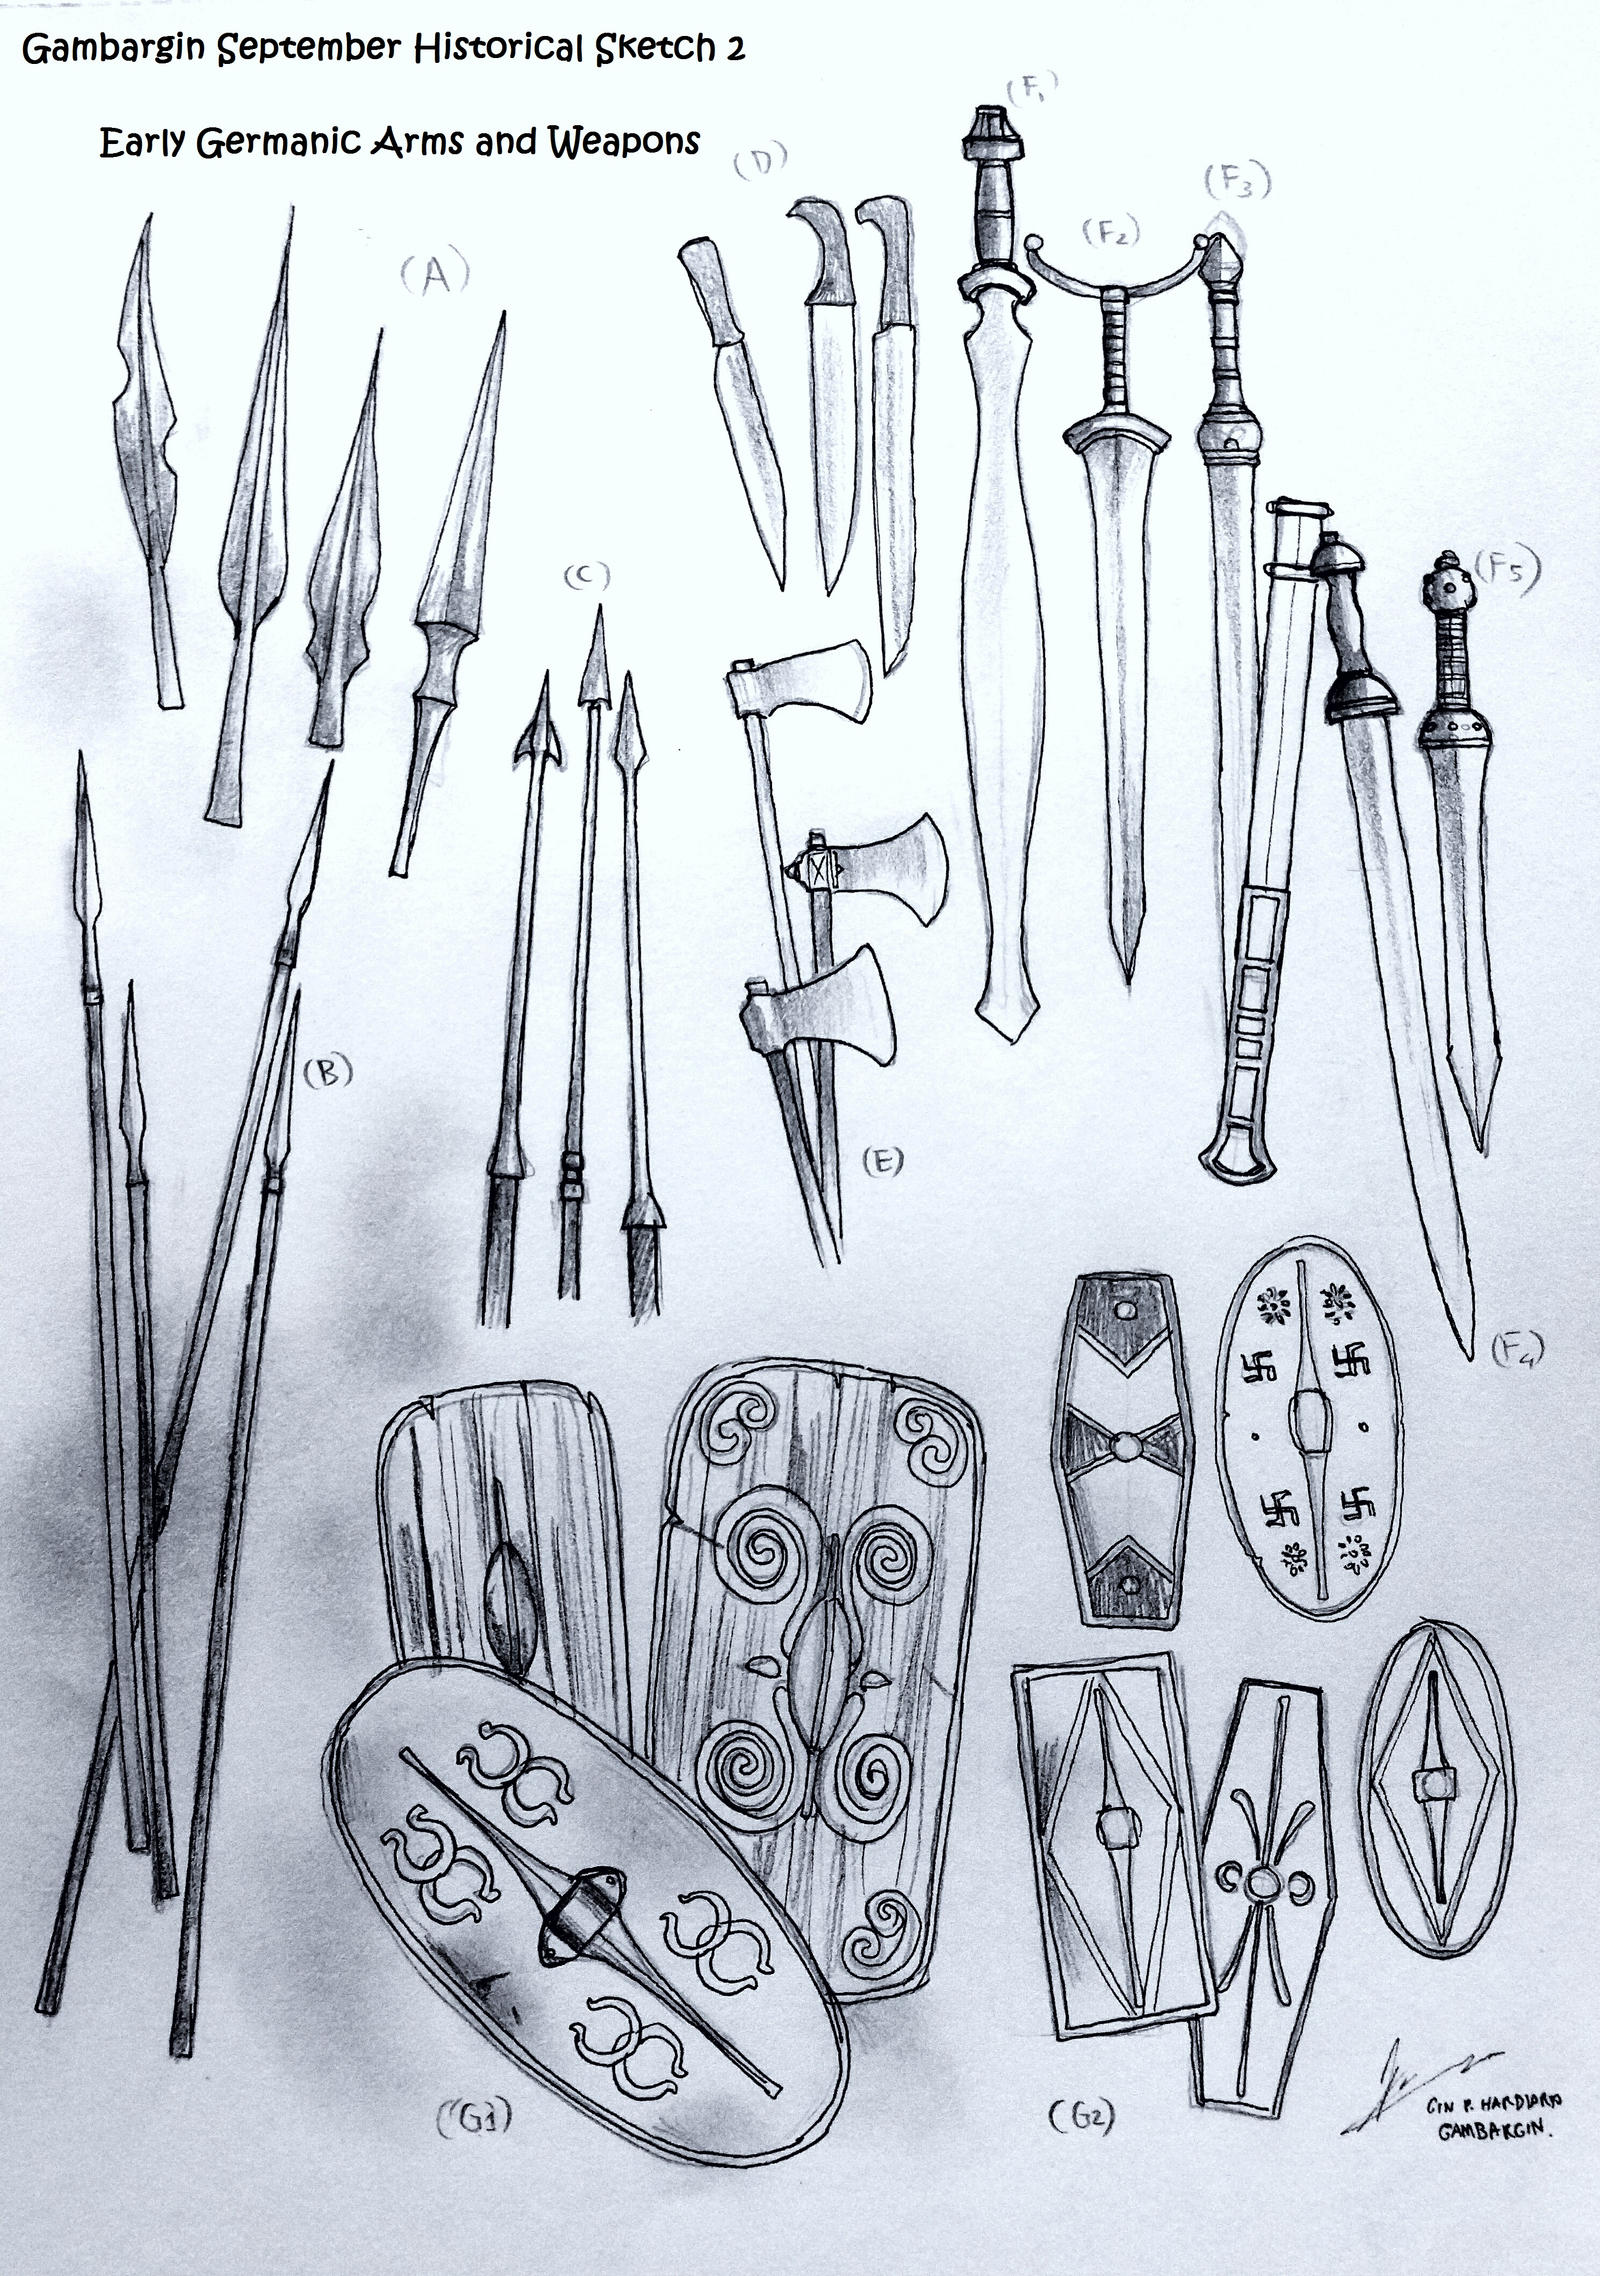 Weapons and Arms of Ancient Germanic Warriors